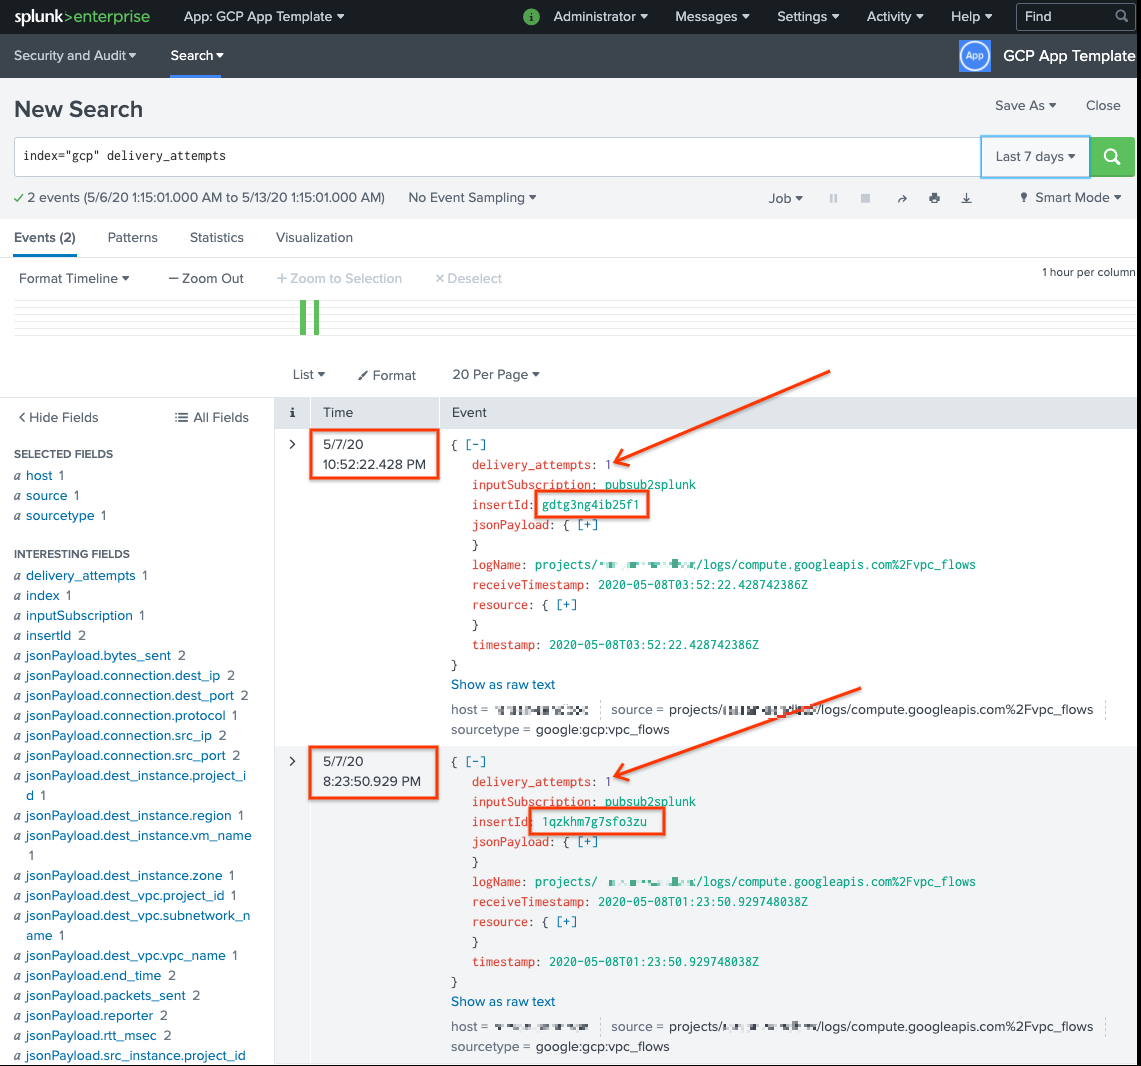 Failed messages in Splunk.